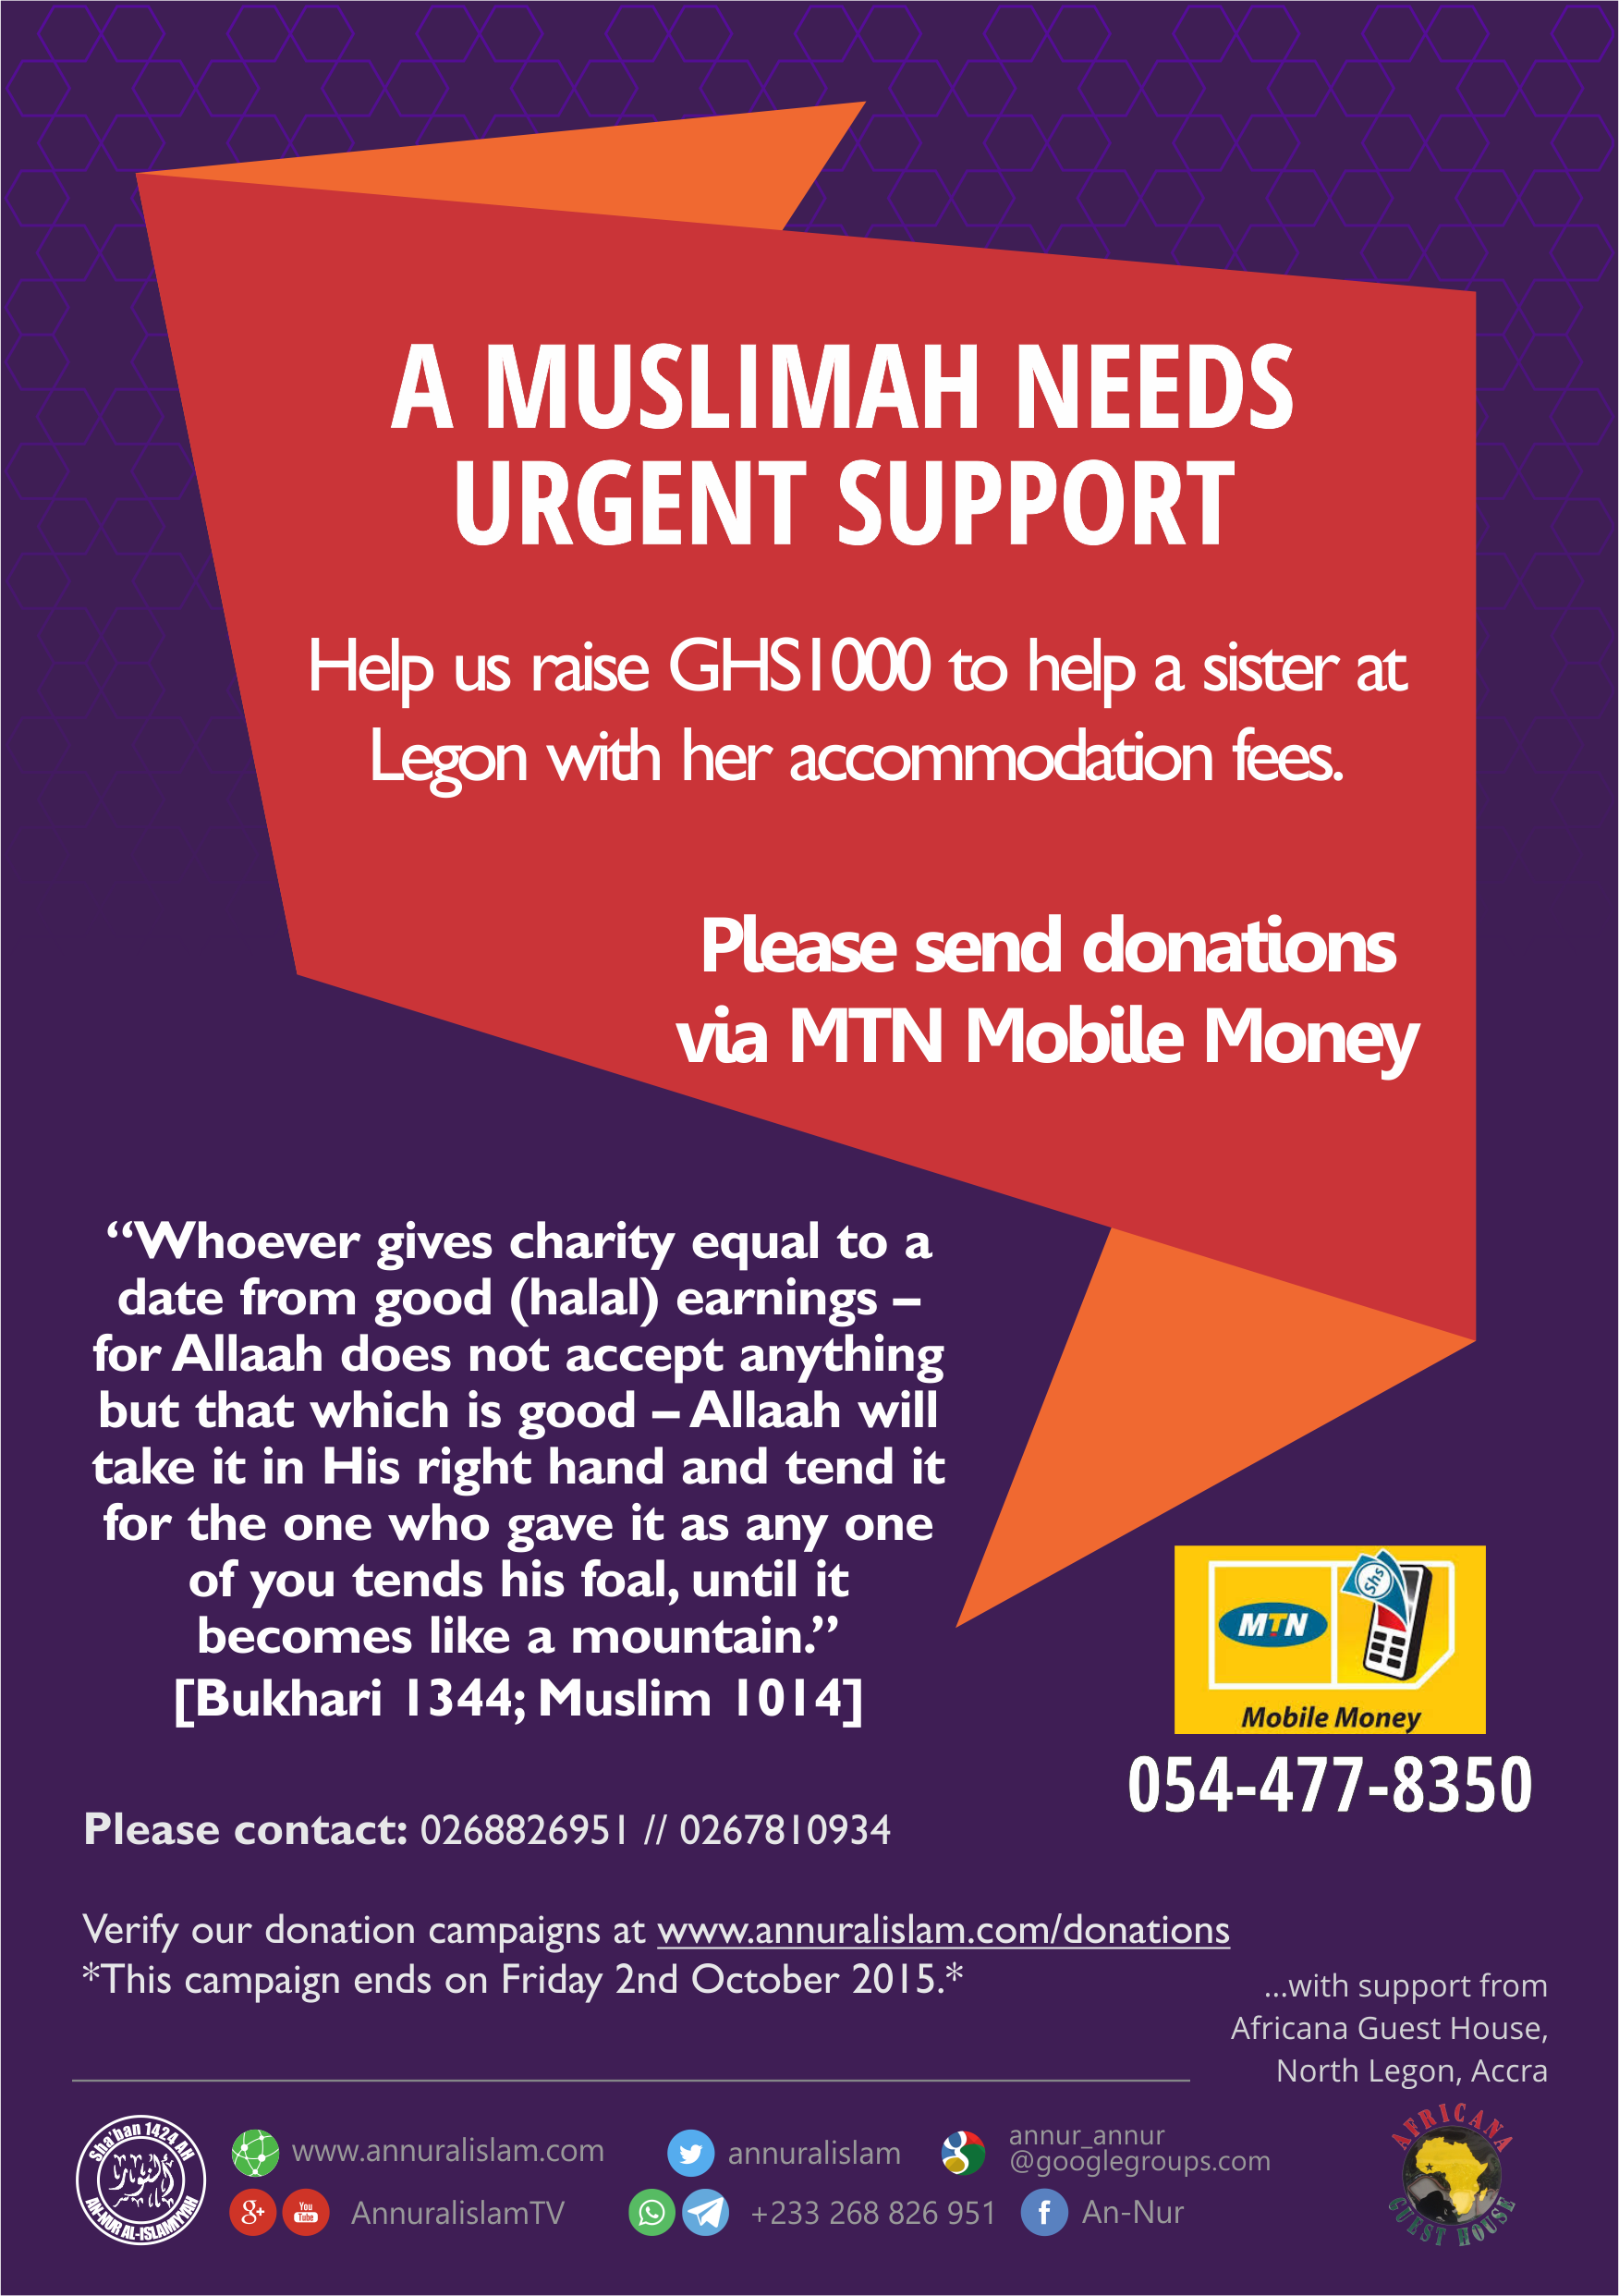 A Muslimah at Legon needs urgent support